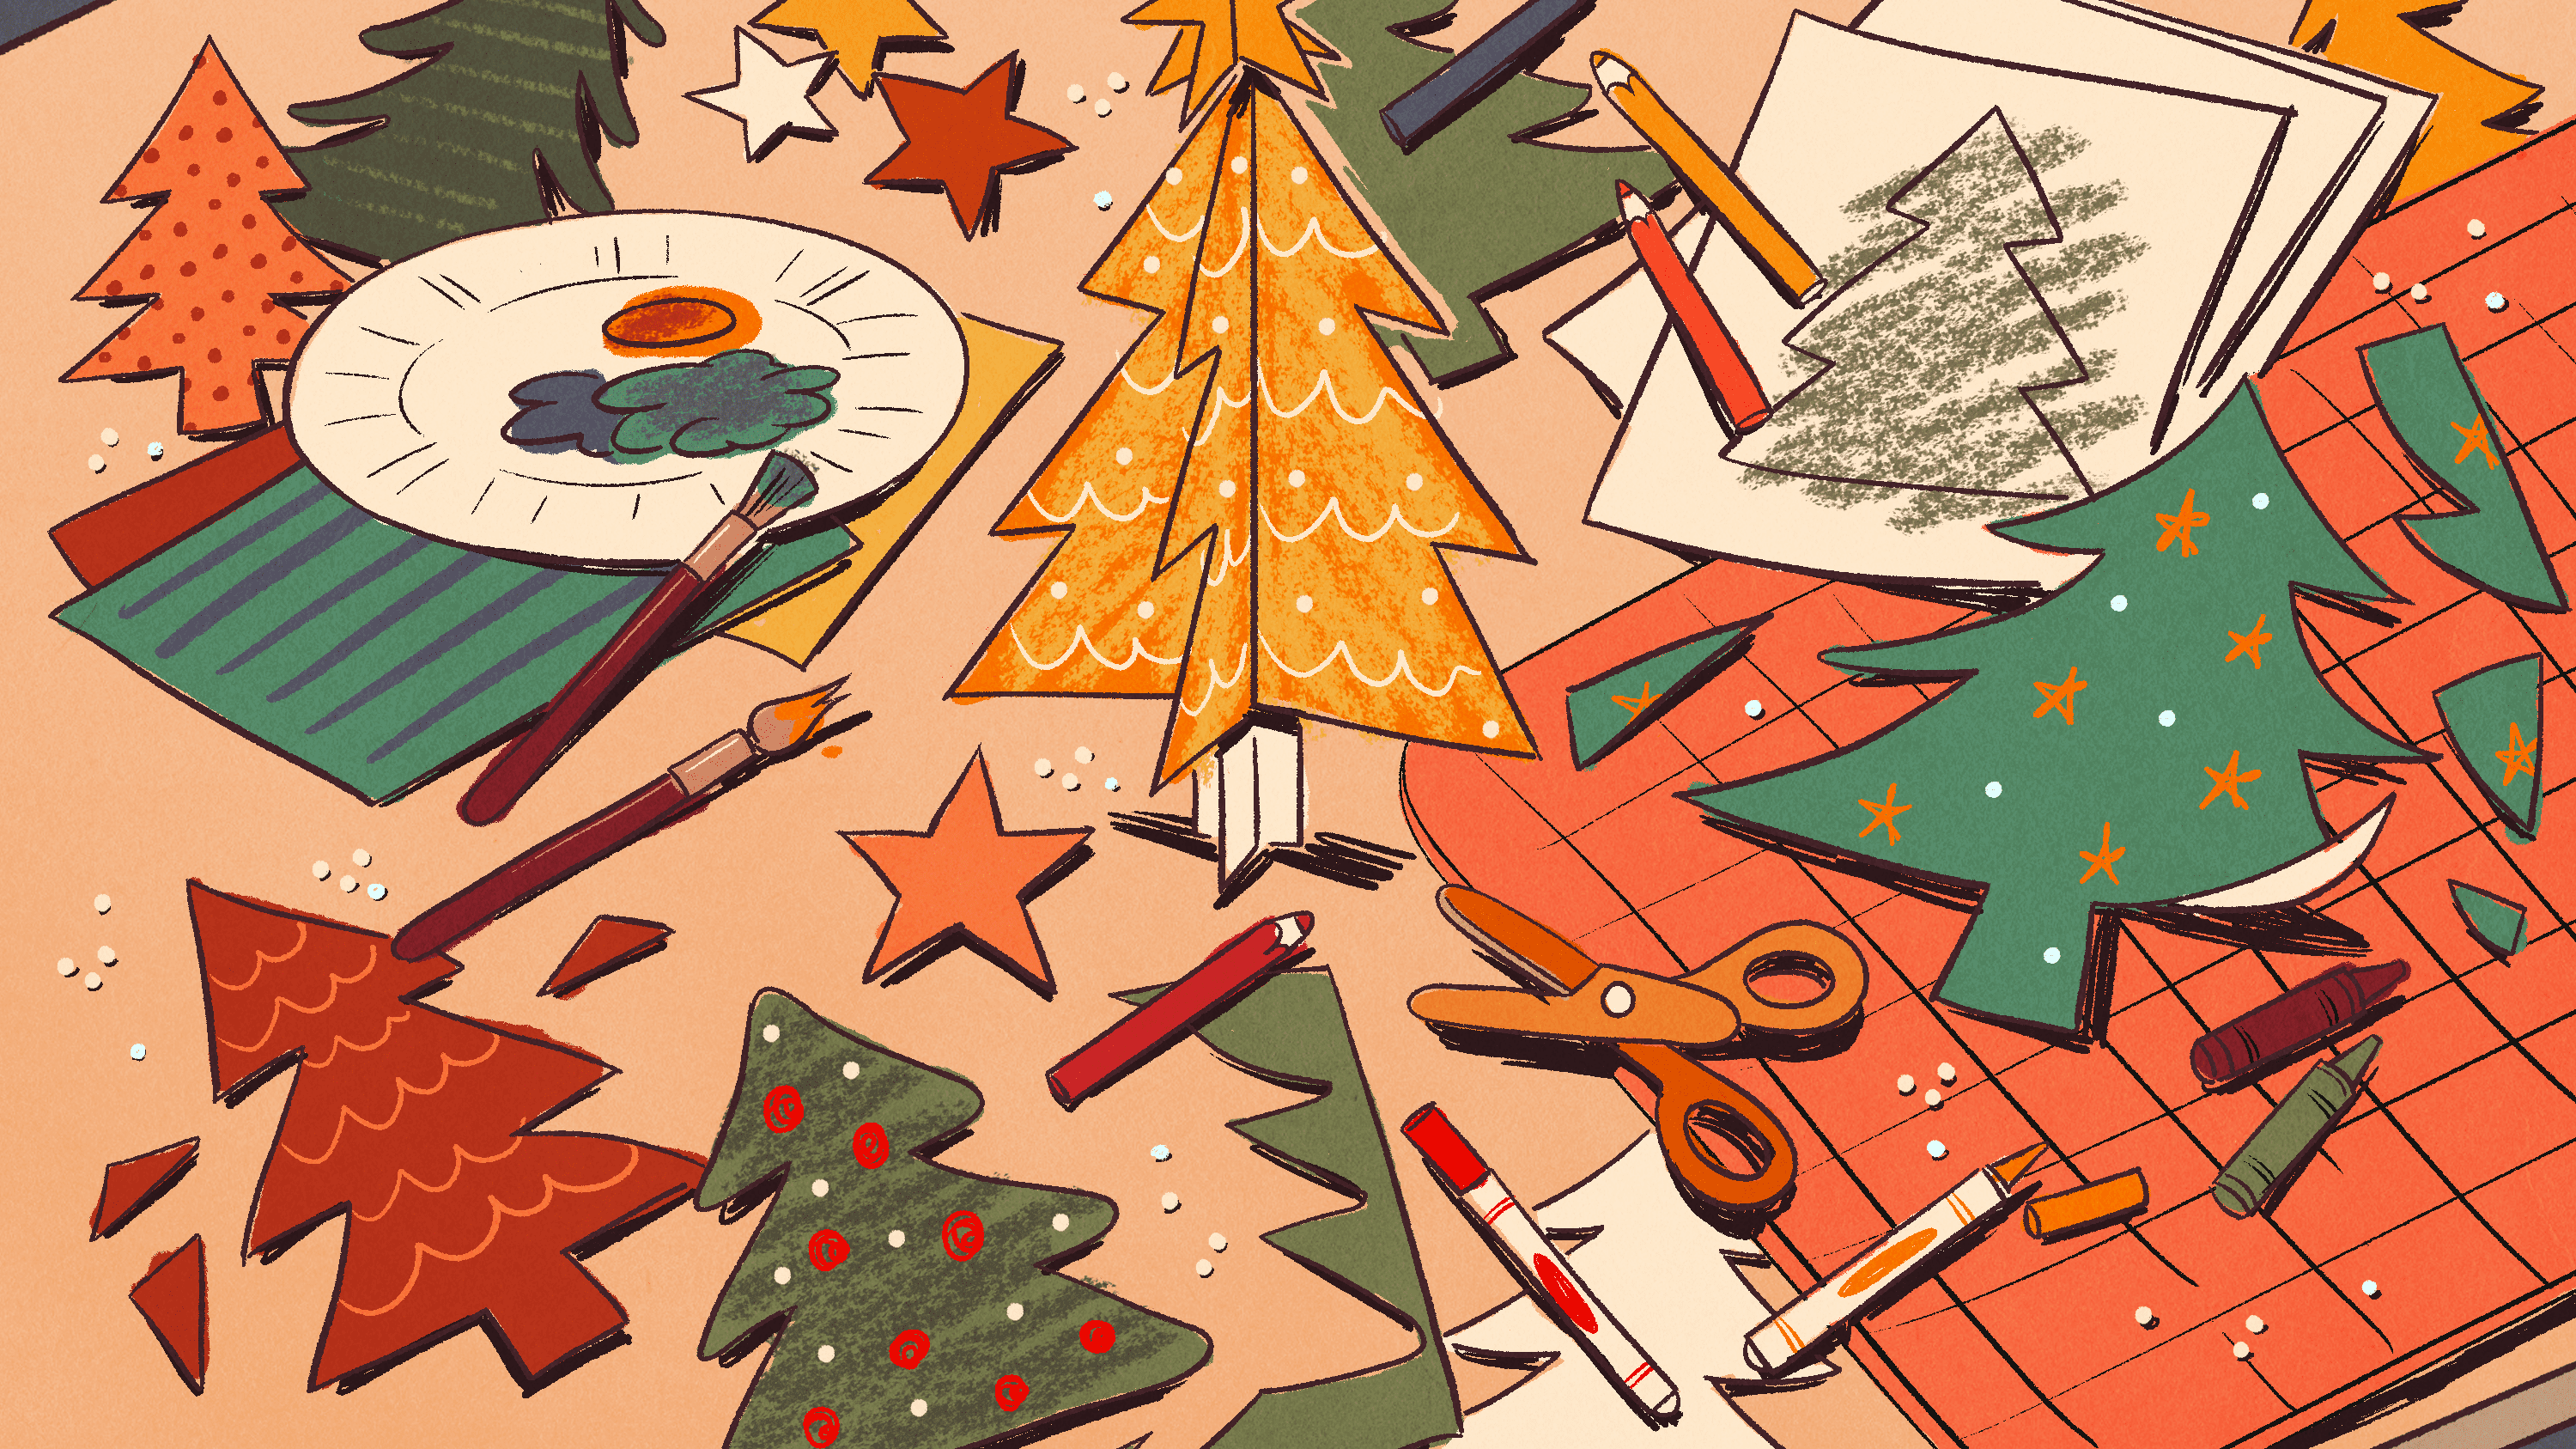 Christmas Tree Pattern.Christmas Tree Templates In All Shapes And Sizes